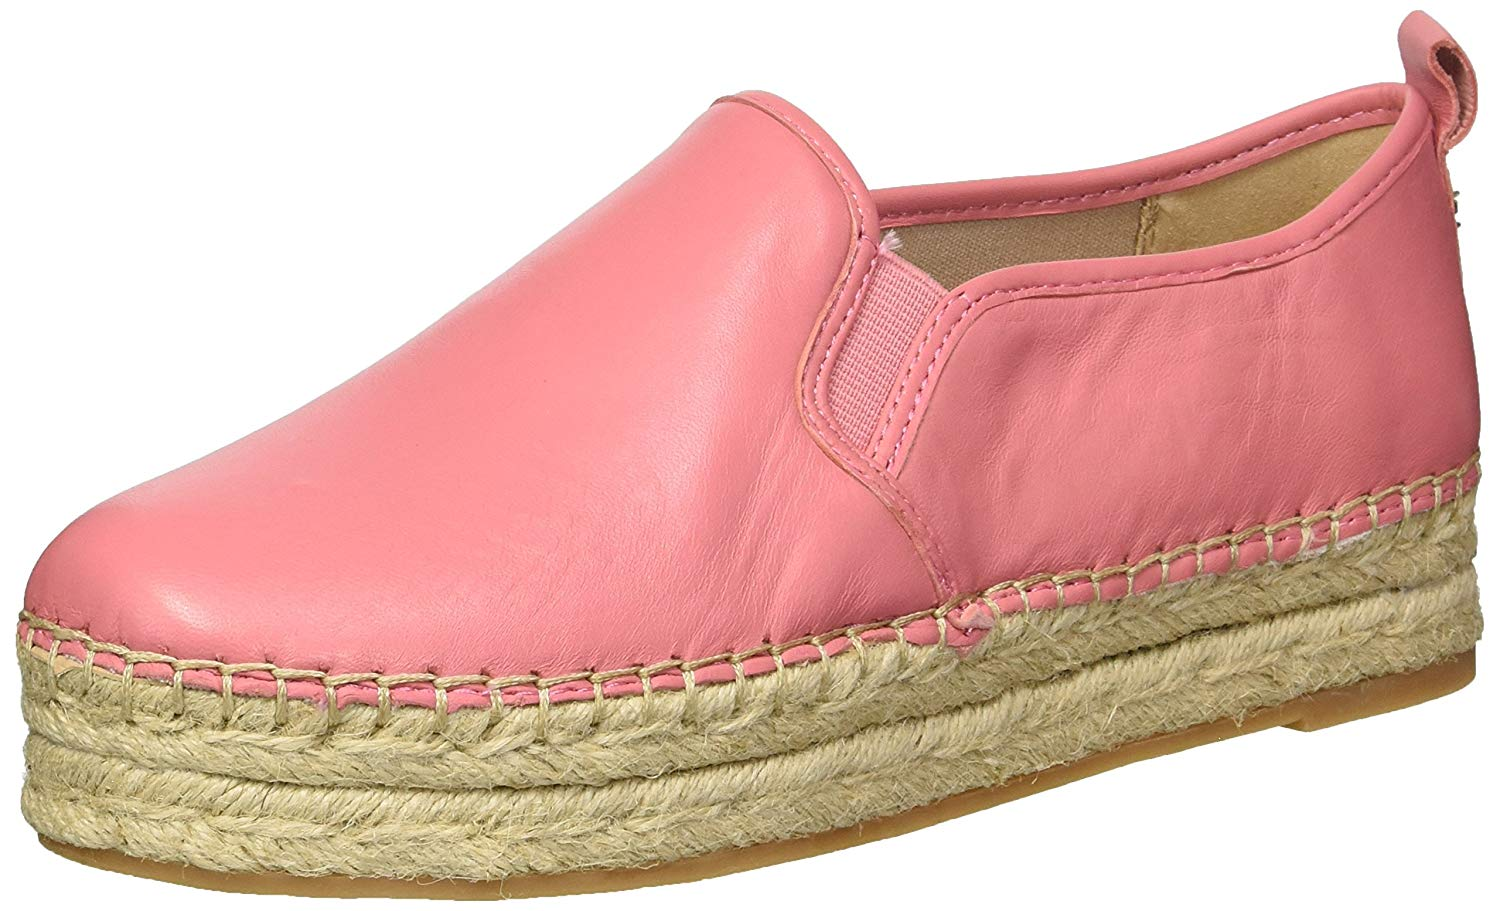 0a06e5343150b Details about Sam Edelman Womens Carrin Leather Closed Toe Espadrille Flats